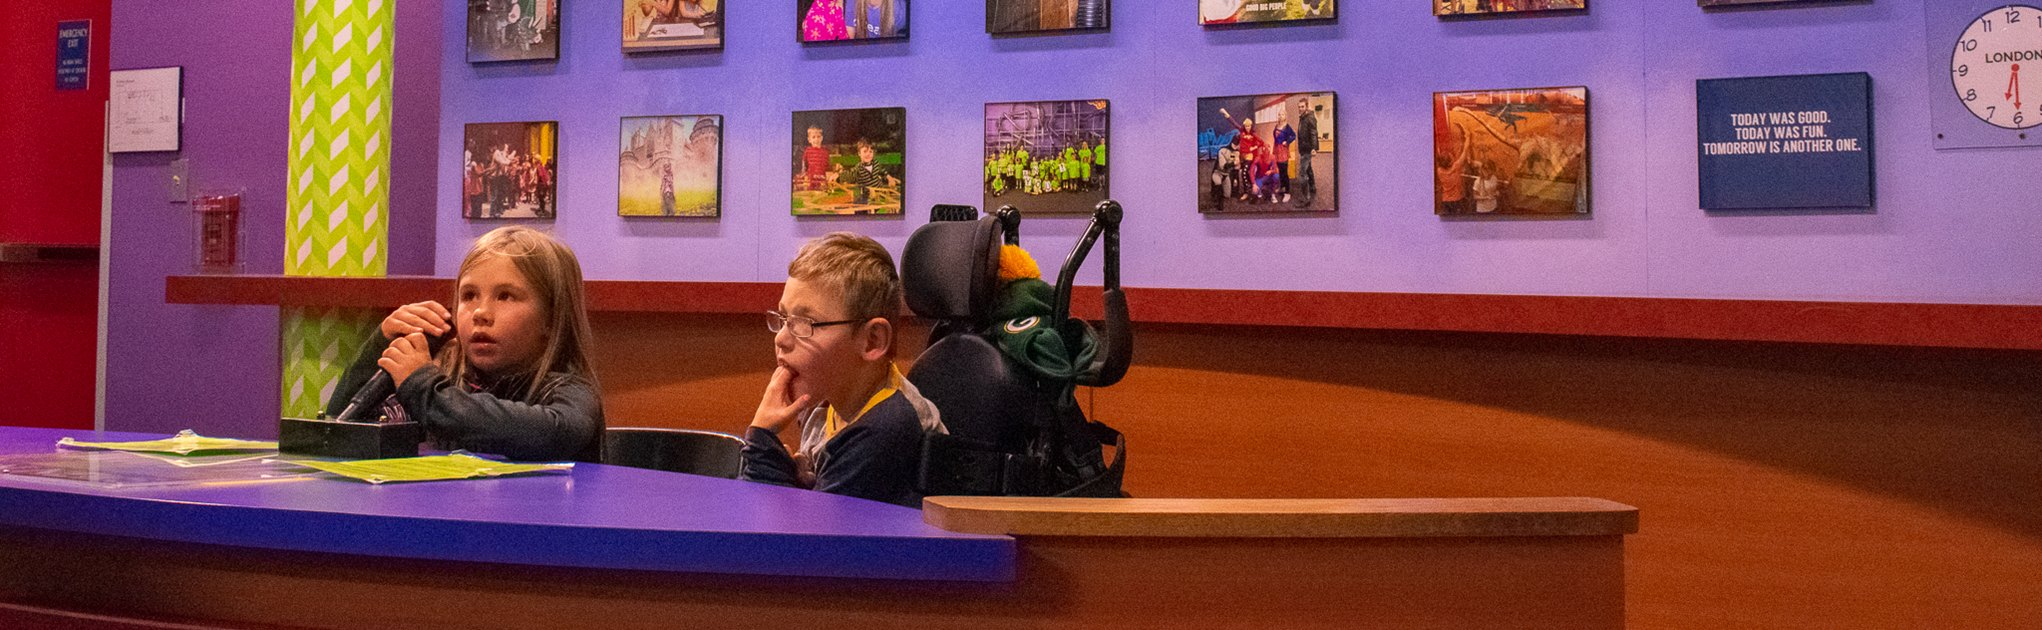 special needs | groups | accomodation | autism | Children's Museum of La Crosse | funmuseum.org